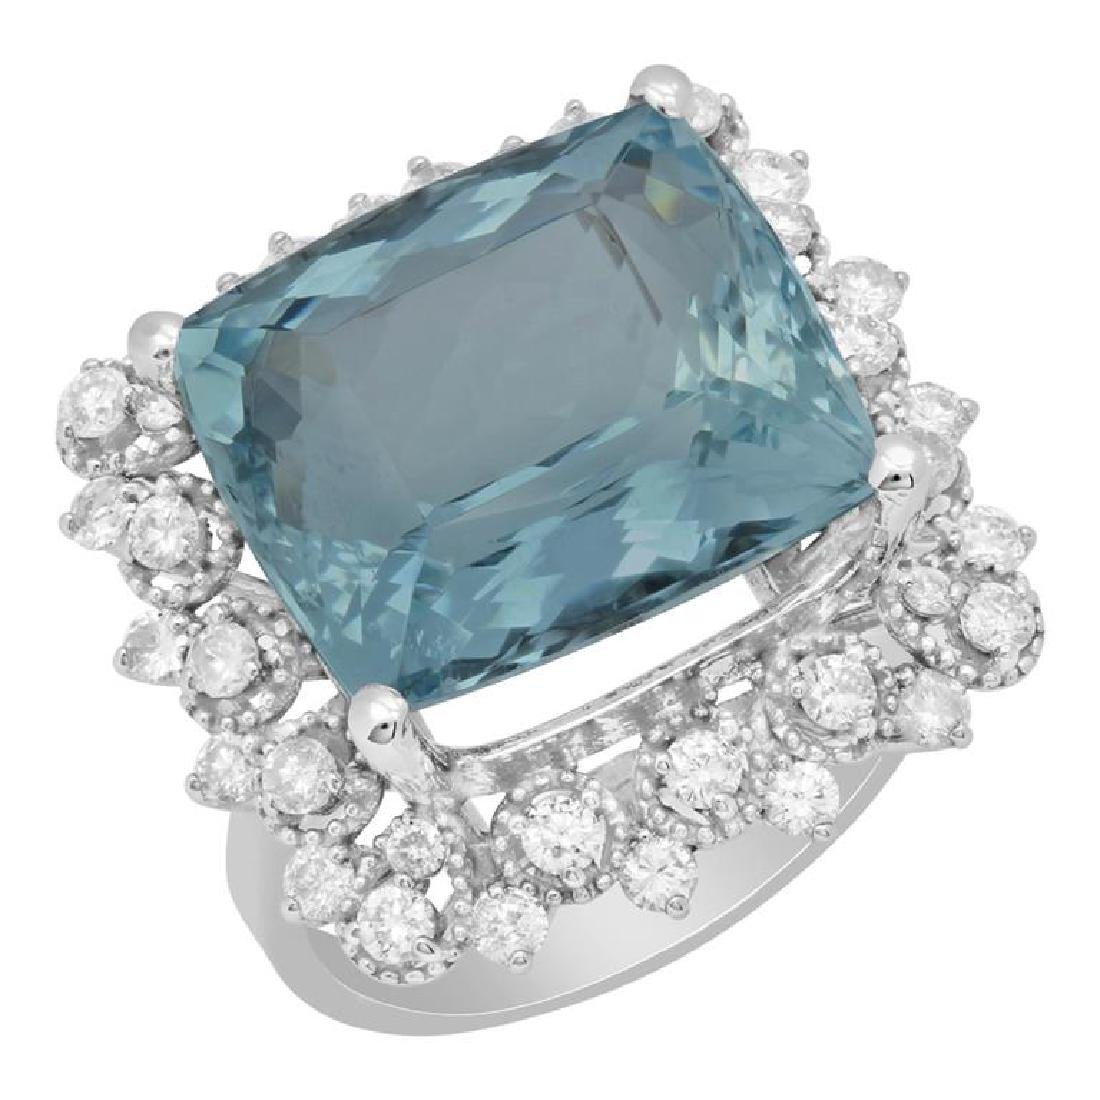 14k White Gold 12.51ct Aquamarine 0.98ct Diamond Ring